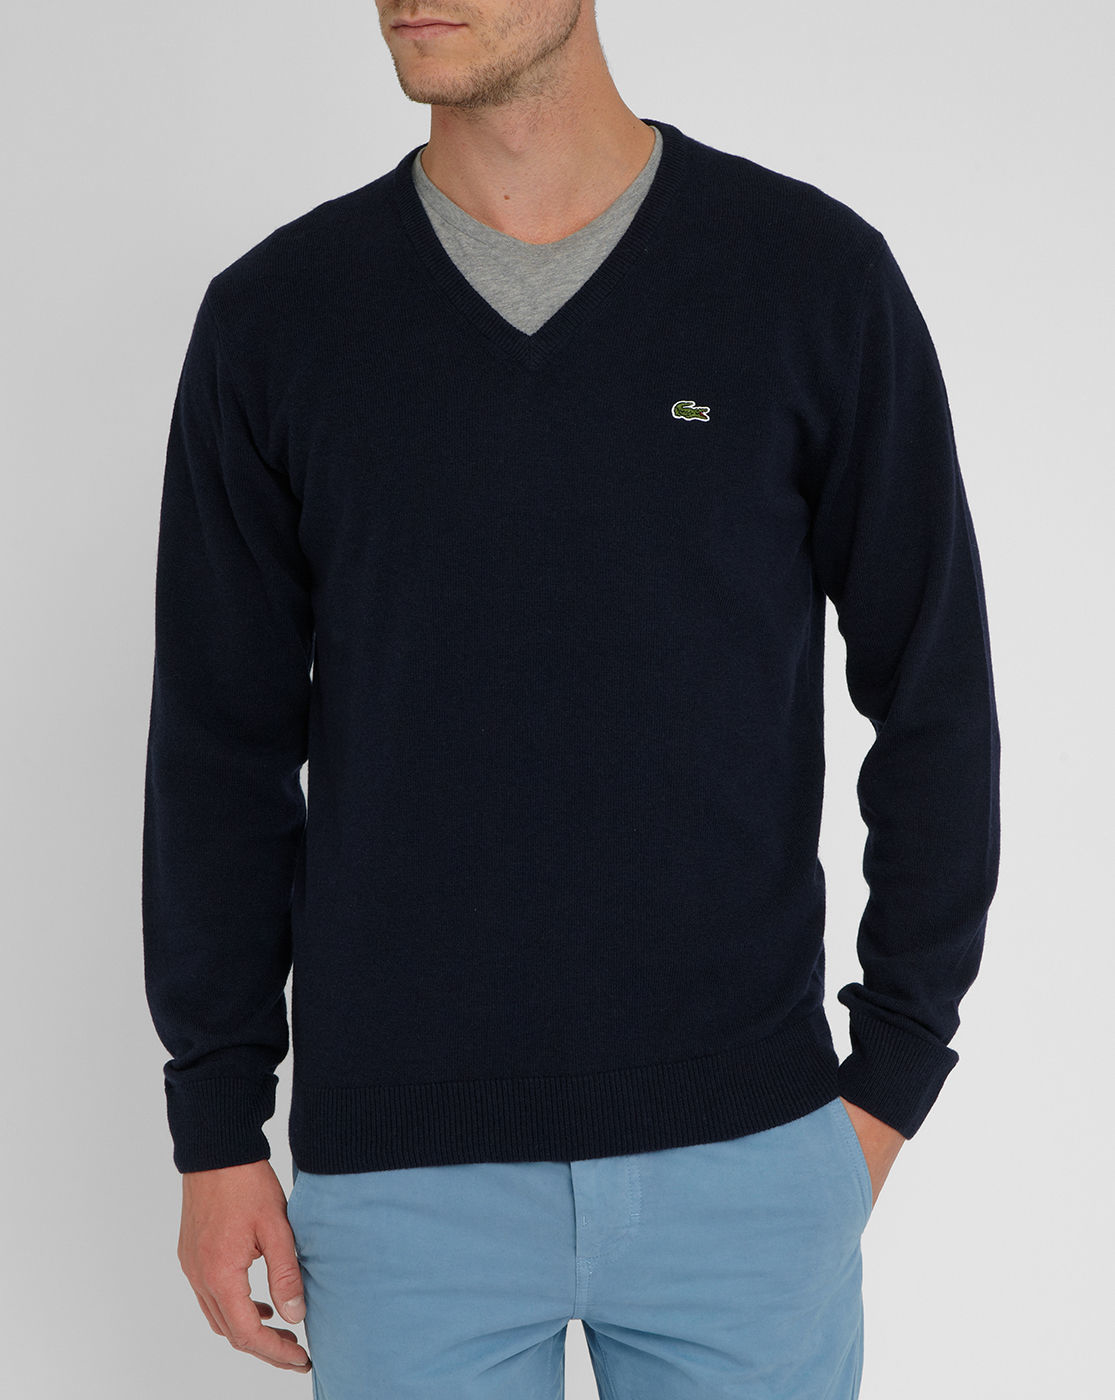 Our versatile range of mens jumpers and sweaters gives you a great choice of styles, fabrics and colours. From heavy‑duty pure wool knits to see you through cold winter days, to lightweight and breathable linen and silk blends for warm weather, rely on our jumpers and sweaters all year round.